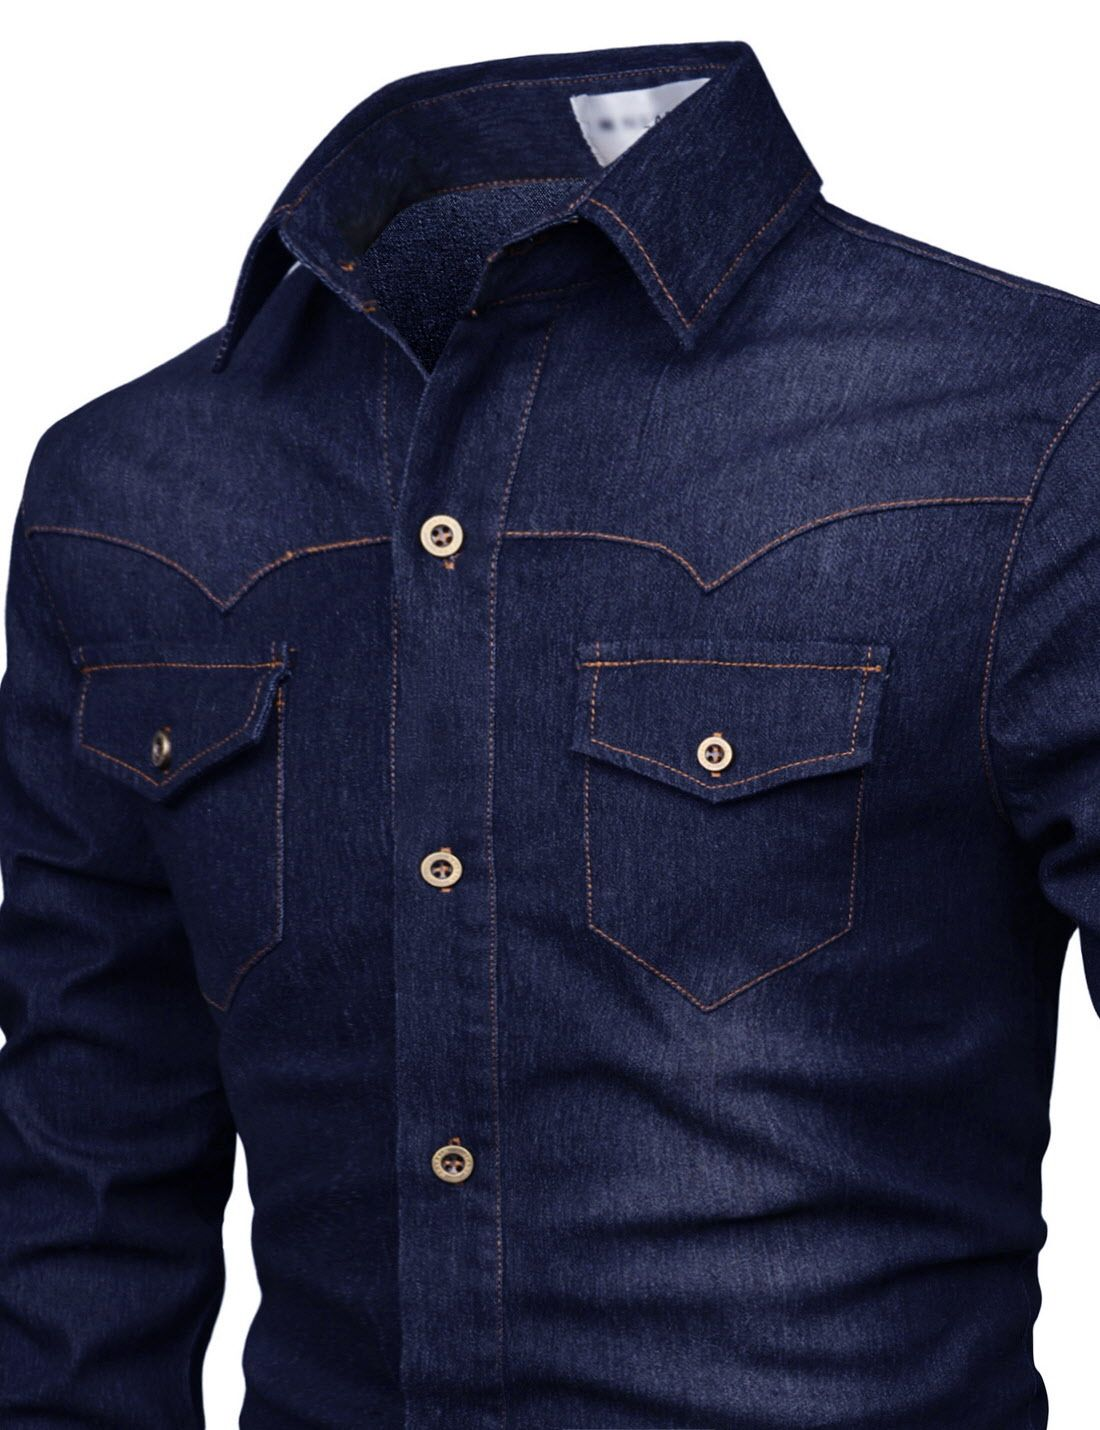 8f564b7169 (NKTHS604) TheLees Mens Slim Fit Long Sleeve Spandex Washing Daily Denim  Shirts